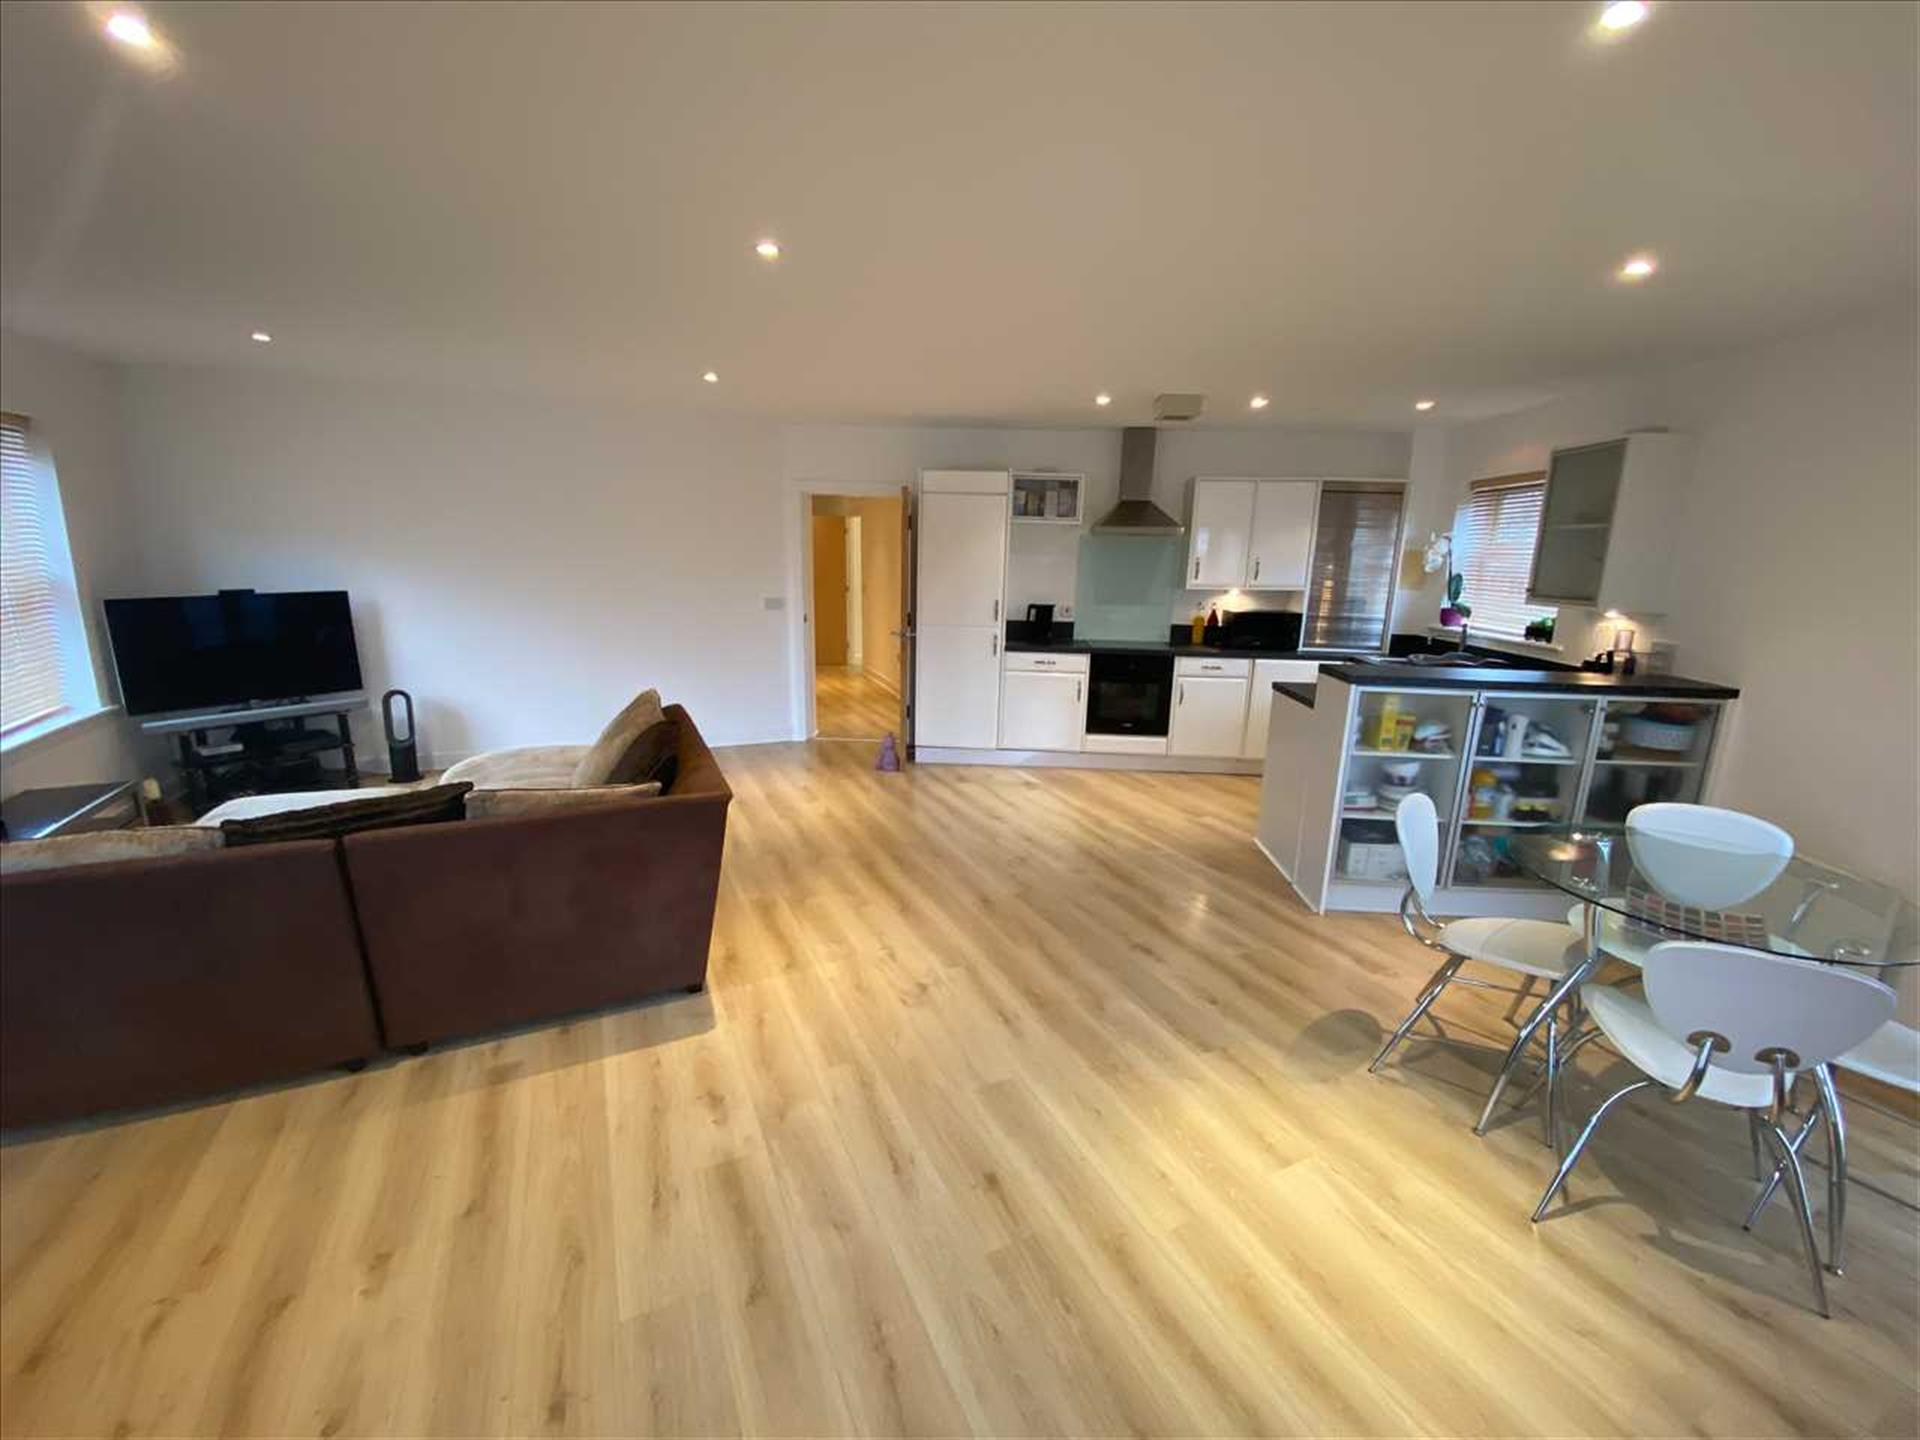 2 Bedroom Apartment Flat / Apartment For Sale - Image 2